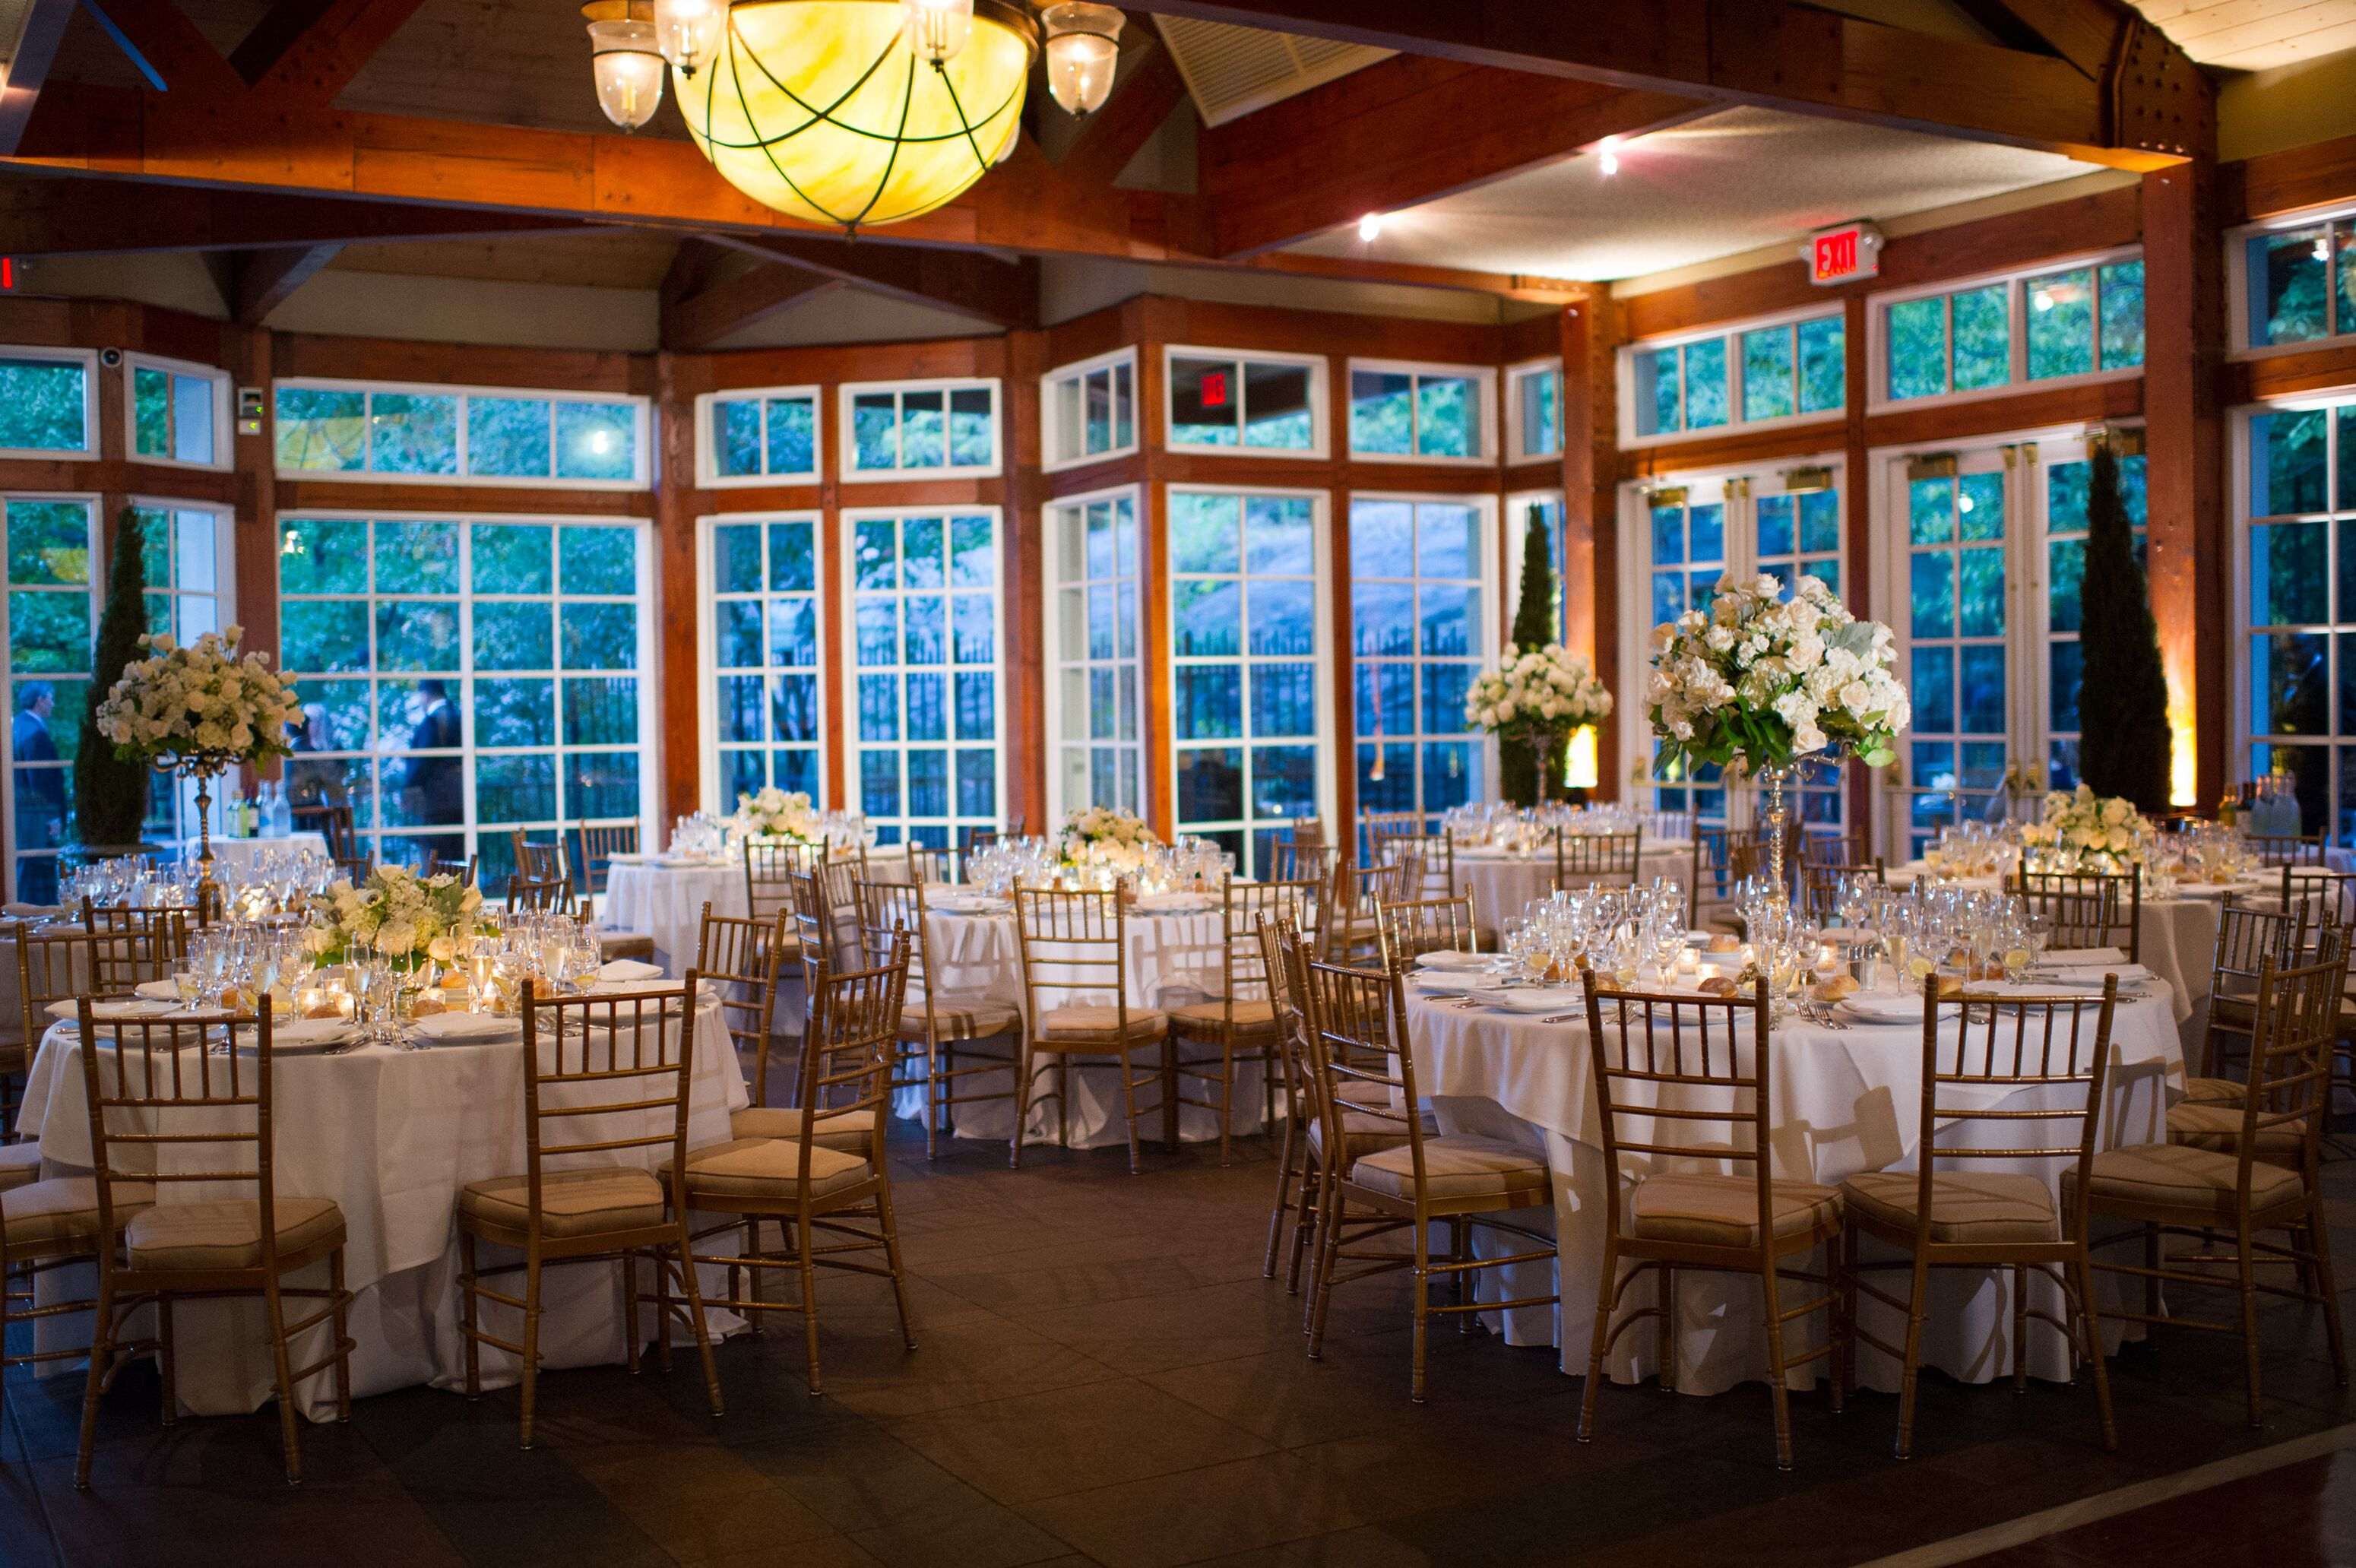 Wedding Reception At Loeb Boathouse Central Park